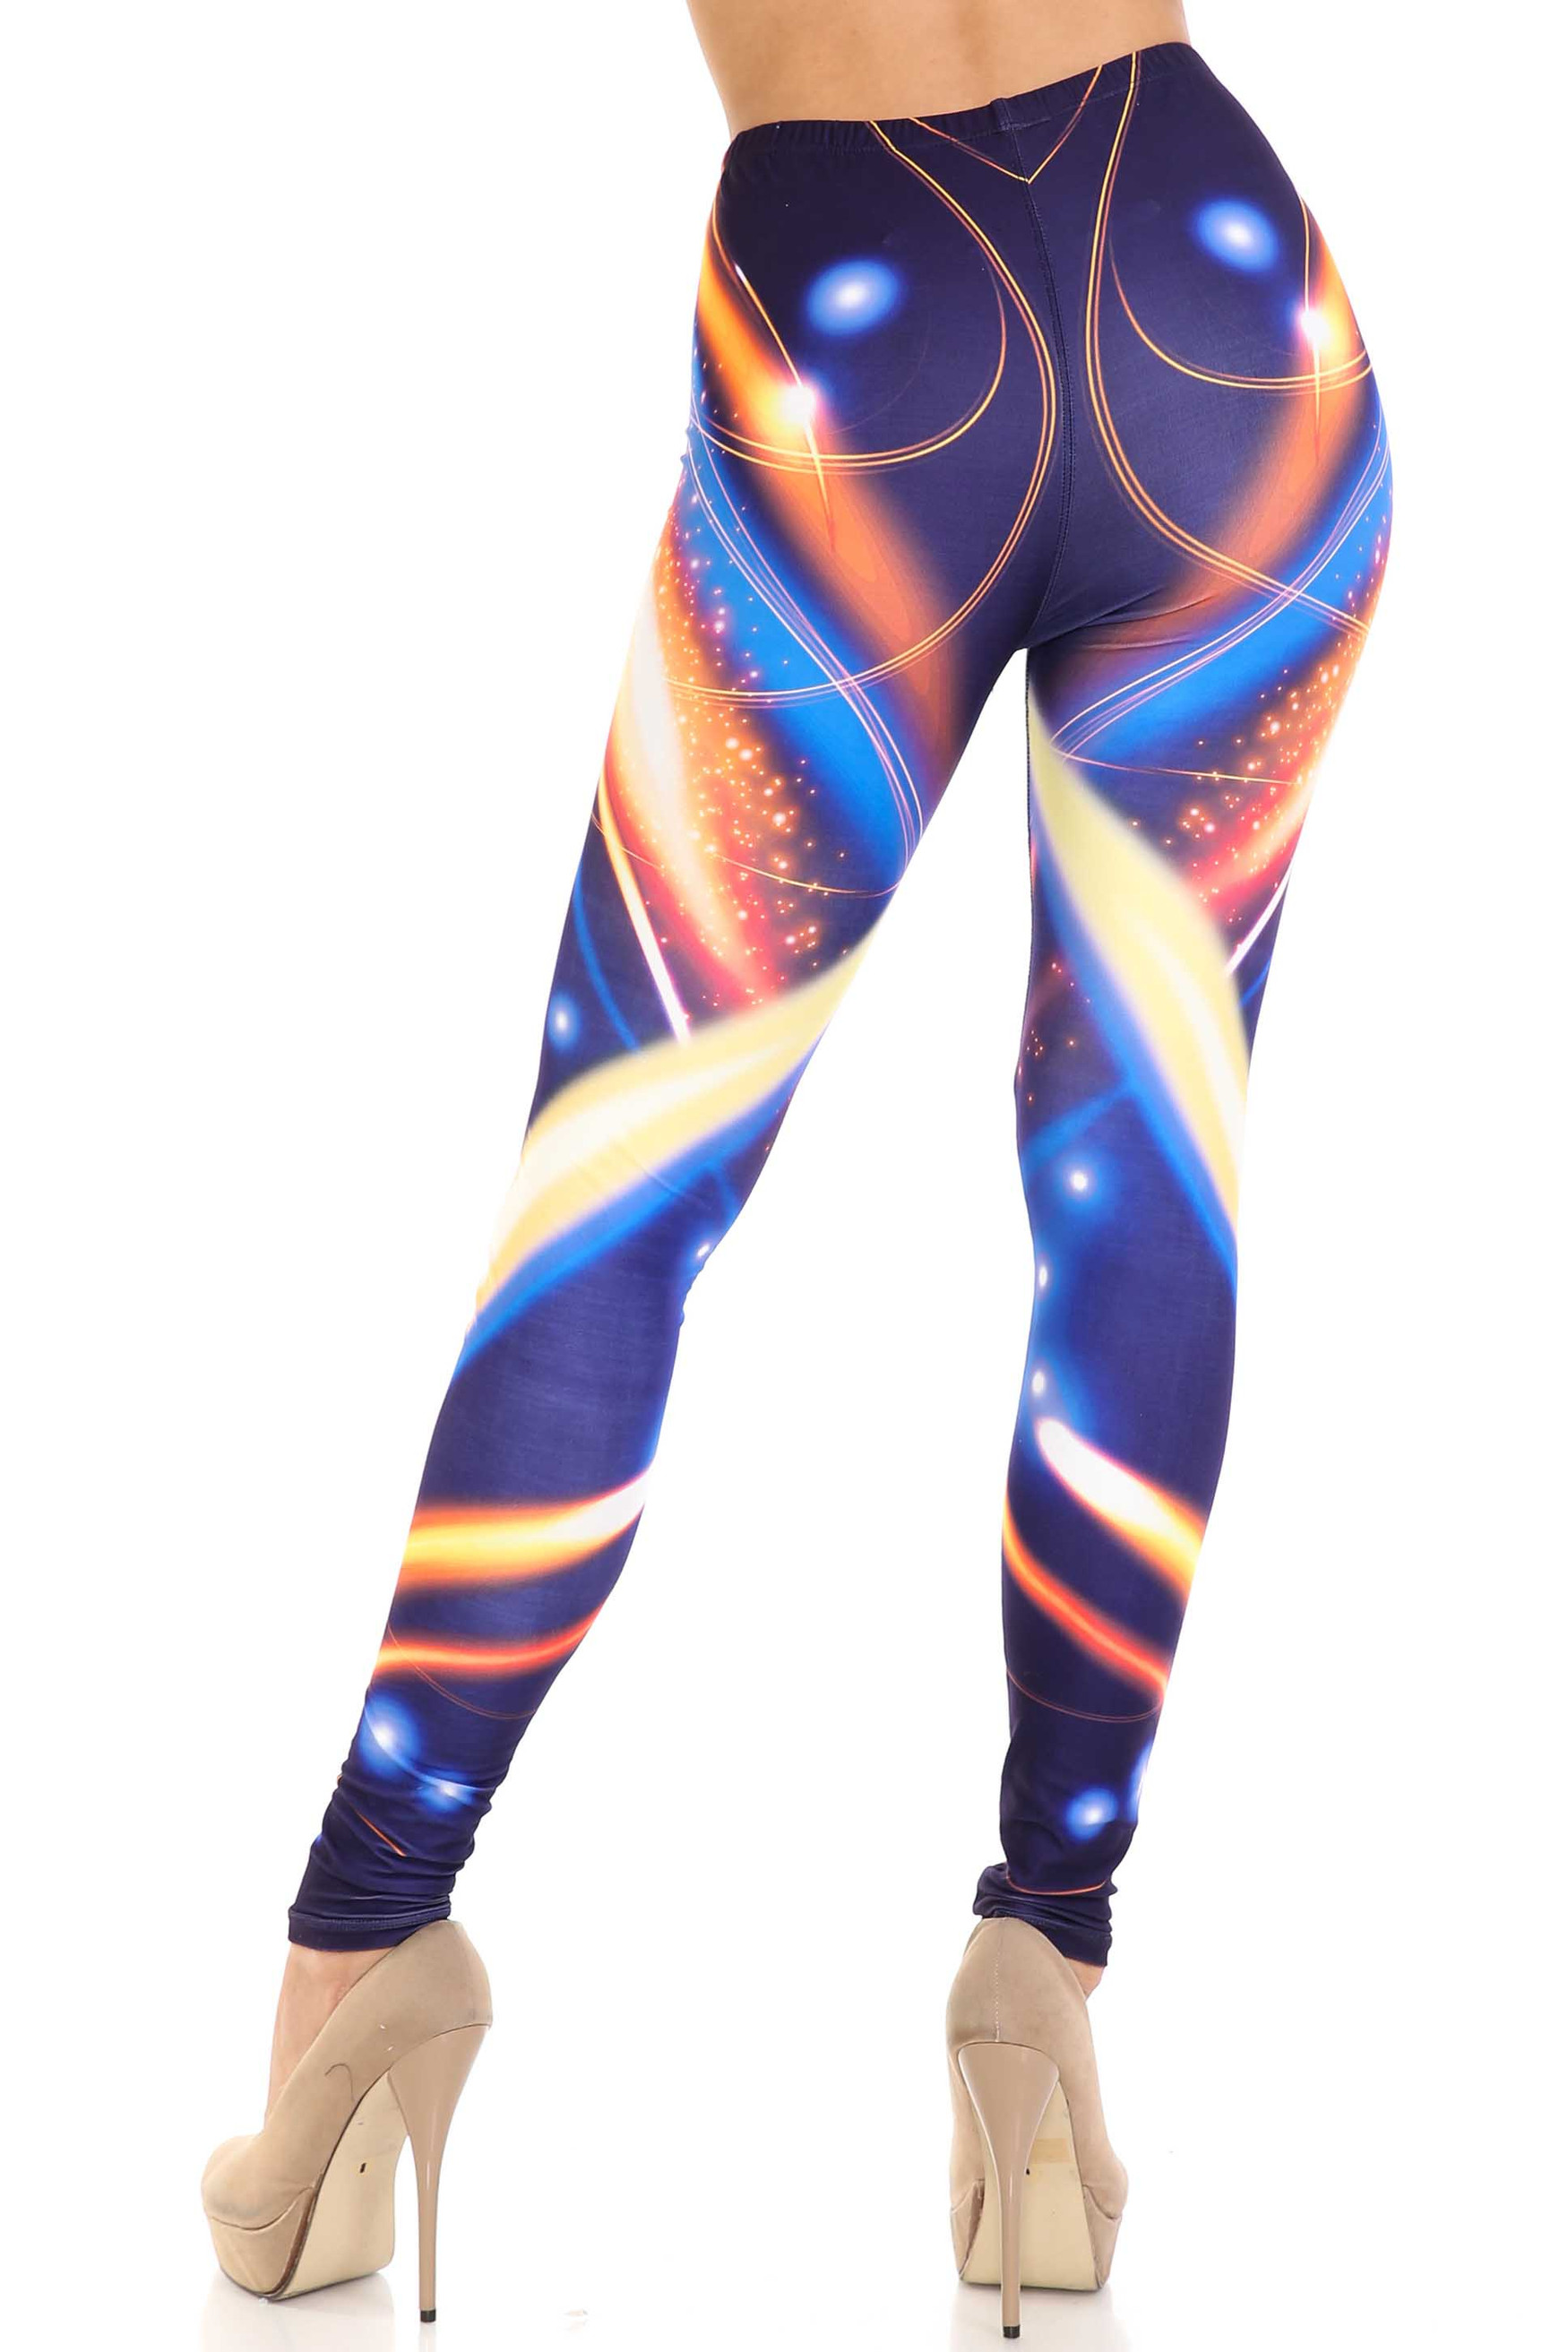 Creamy Soft Psychedelic Contour Plus Size Leggings - By USA Fashion™